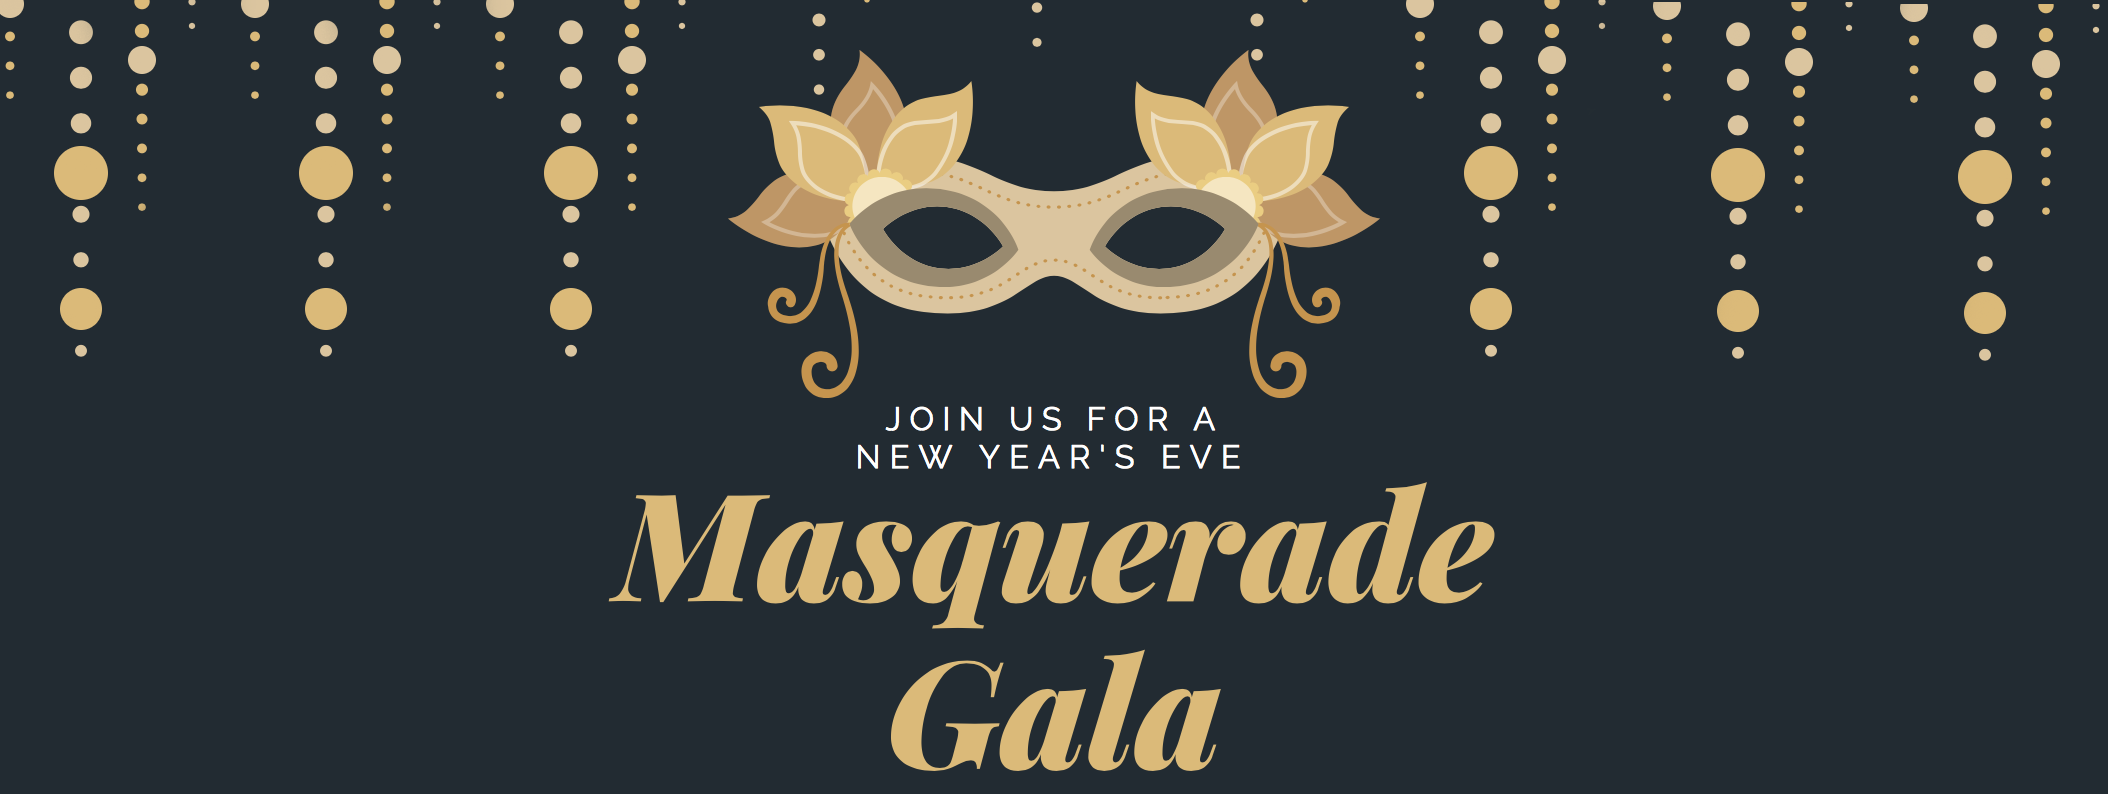 9ff6993fcd The Junior League of Eugene is inviting everyone to ring in 2019 at a New  Year s Eve Masquerade Gala. Held at Along Came Trudy in Springfield